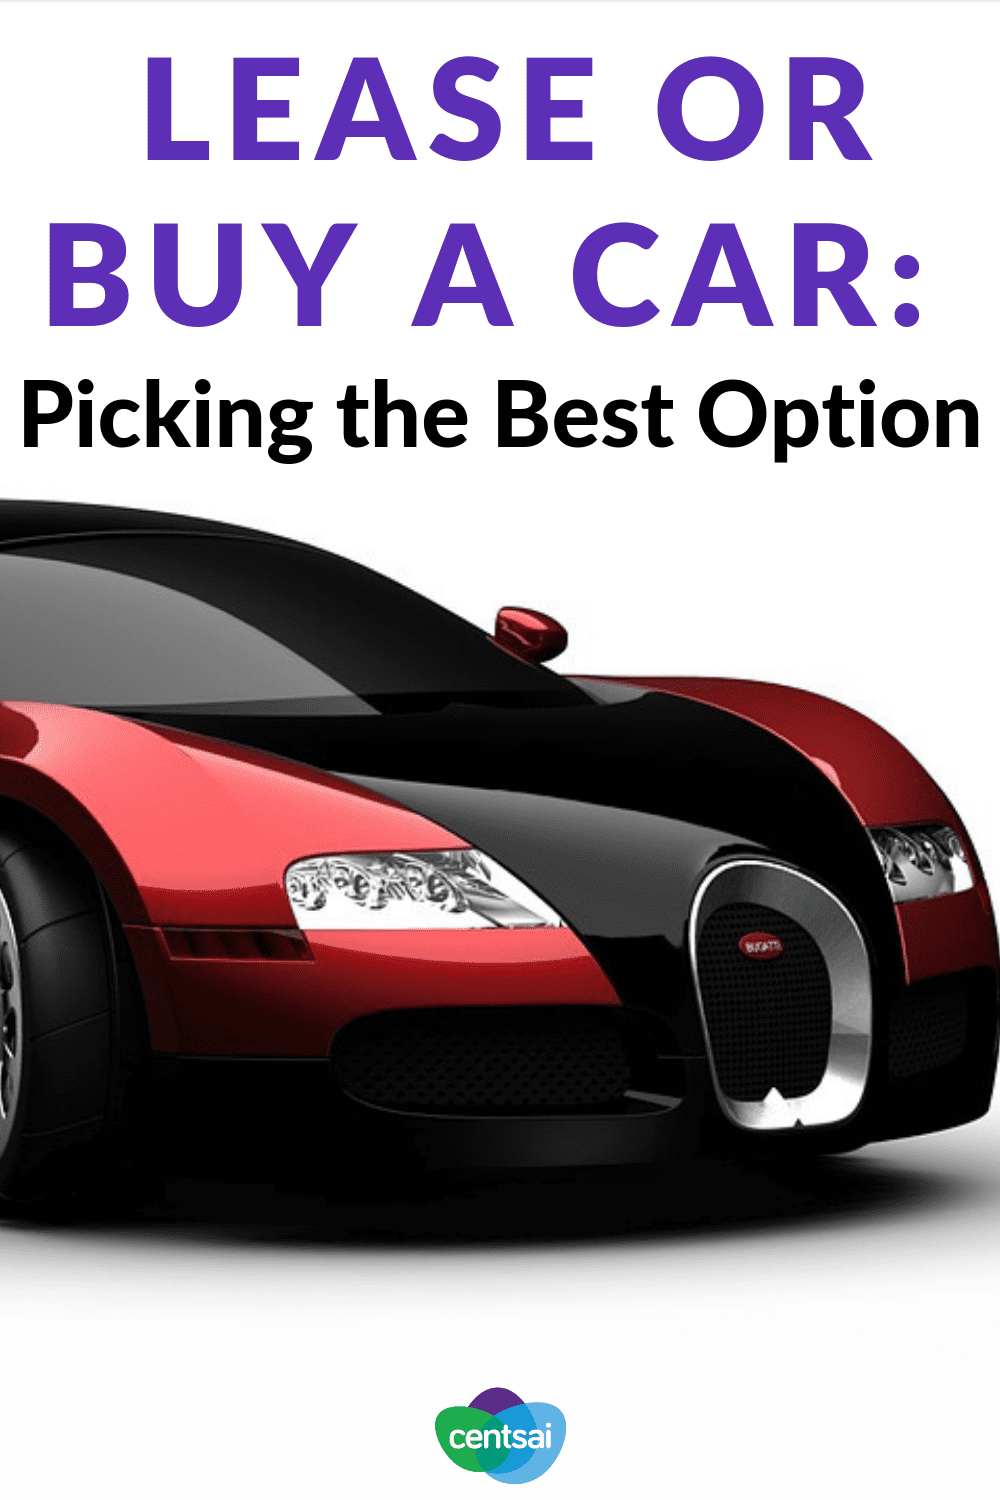 Lease or Buy a Car: Picking the Best Option. Are you deciding whether to lease or buy a car? Not sure which is the best option? Check out these tips to help you make a decision. #leaseacar #buyacar #financialplanning #tips